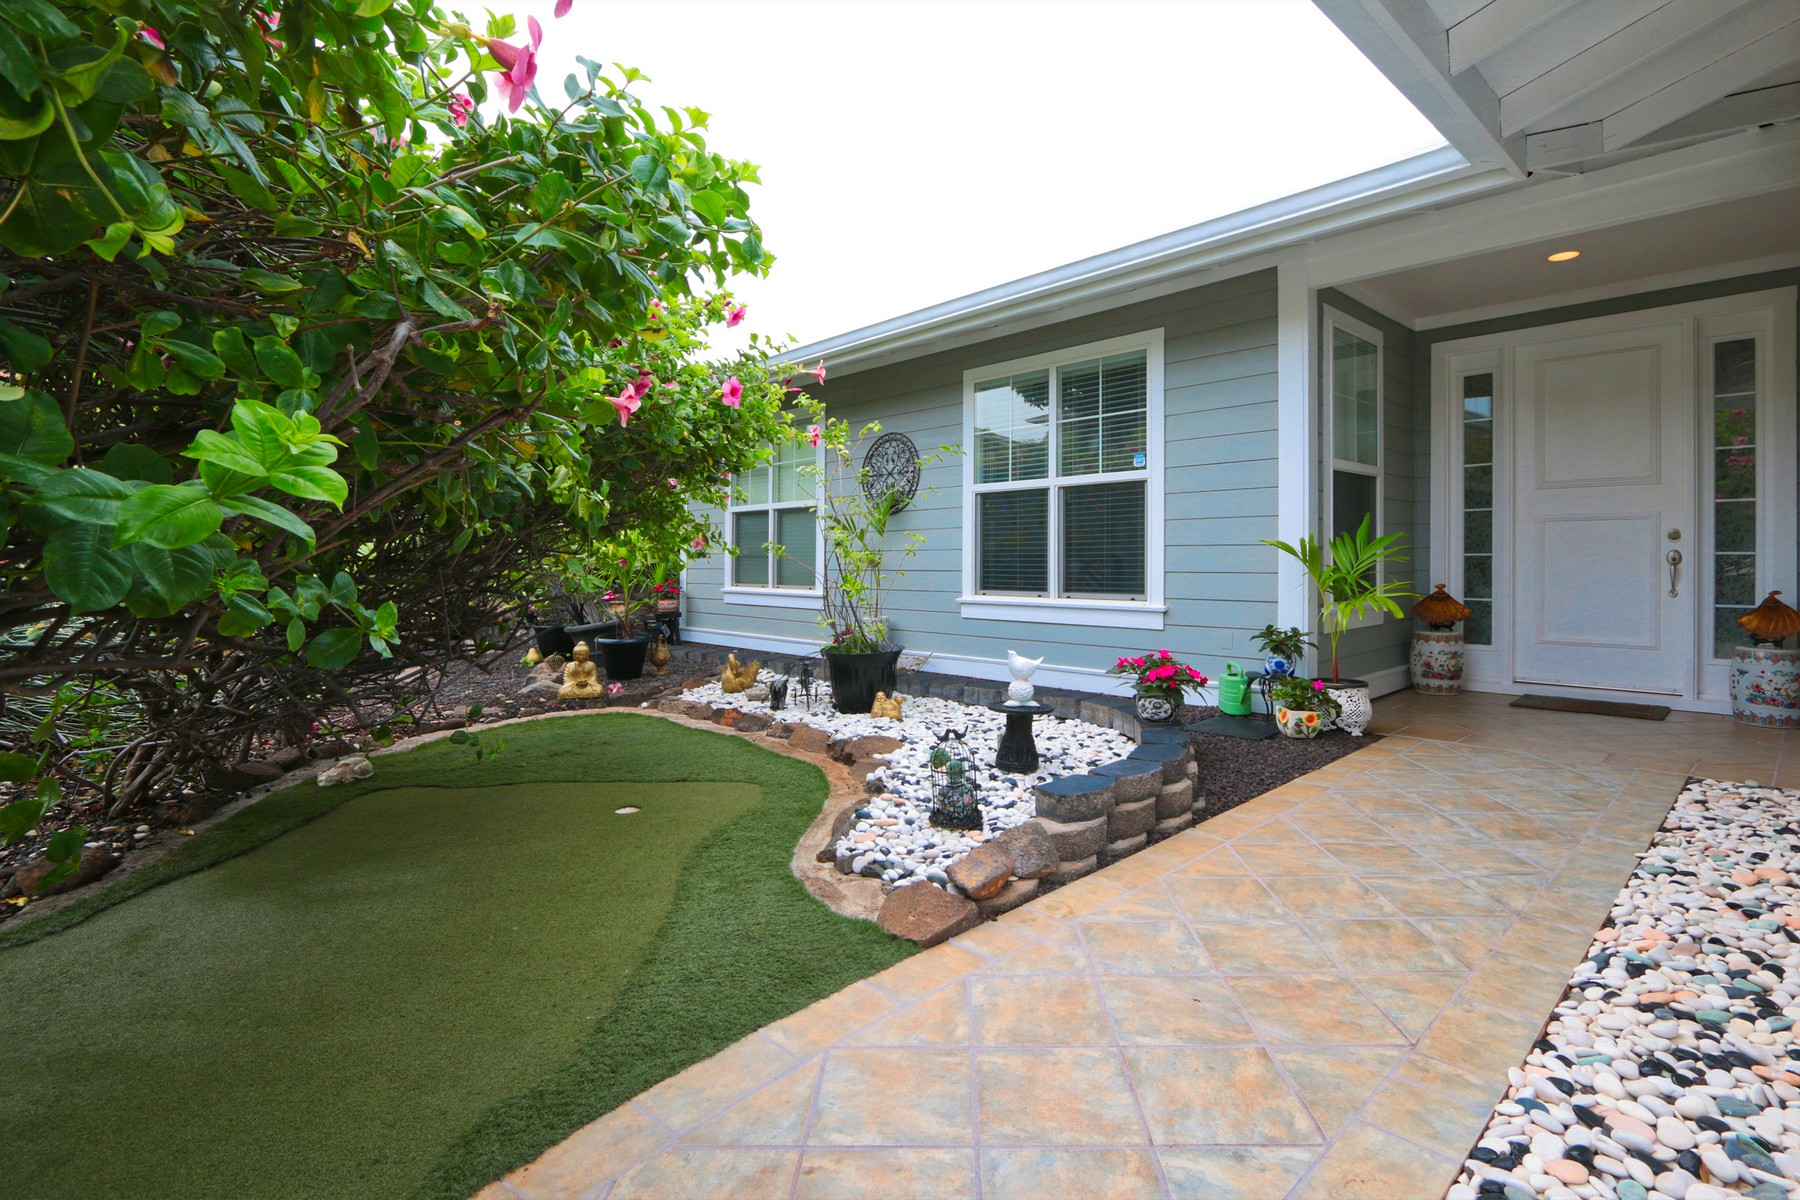 Maison unifamiliale pour l Vente à Friendly Neighborhood Great Location 111 Kulipuu Street Kihei, Hawaii 96753 États-Unis